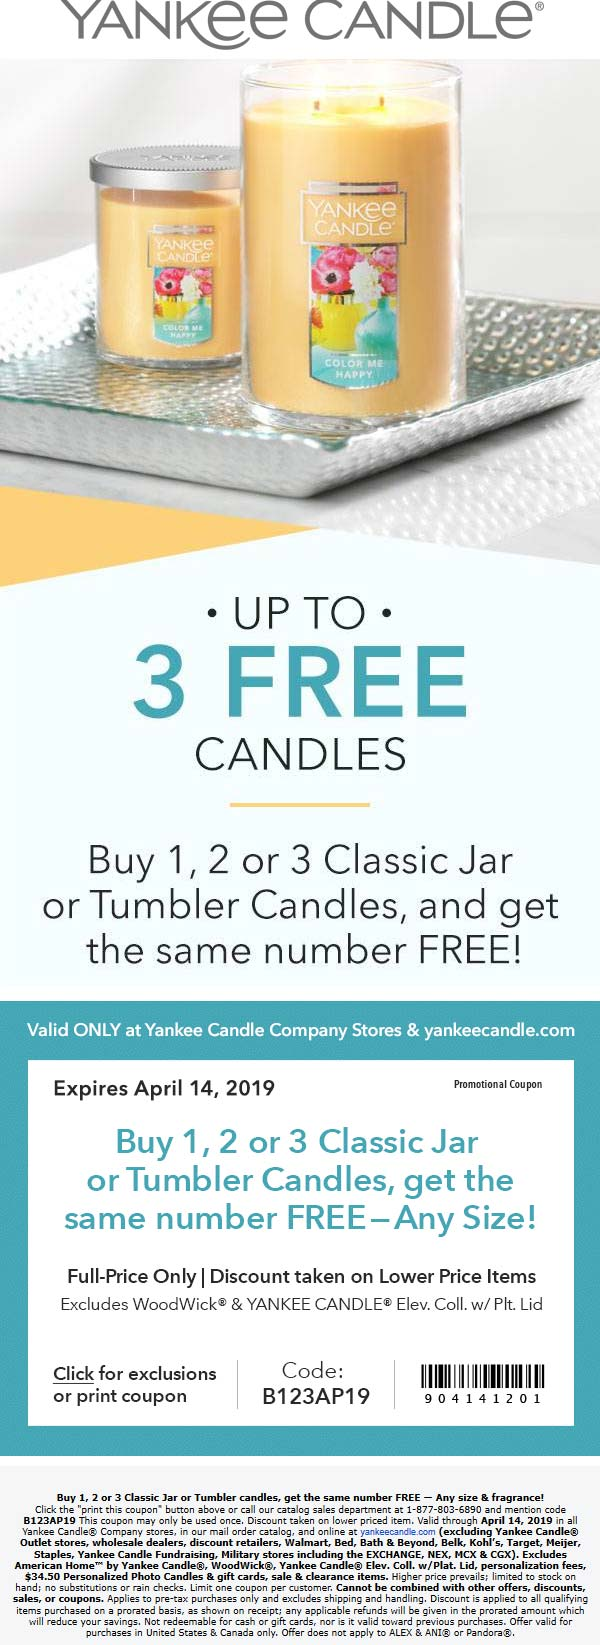 Yankee Candle coupons & promo code for [April 2020]